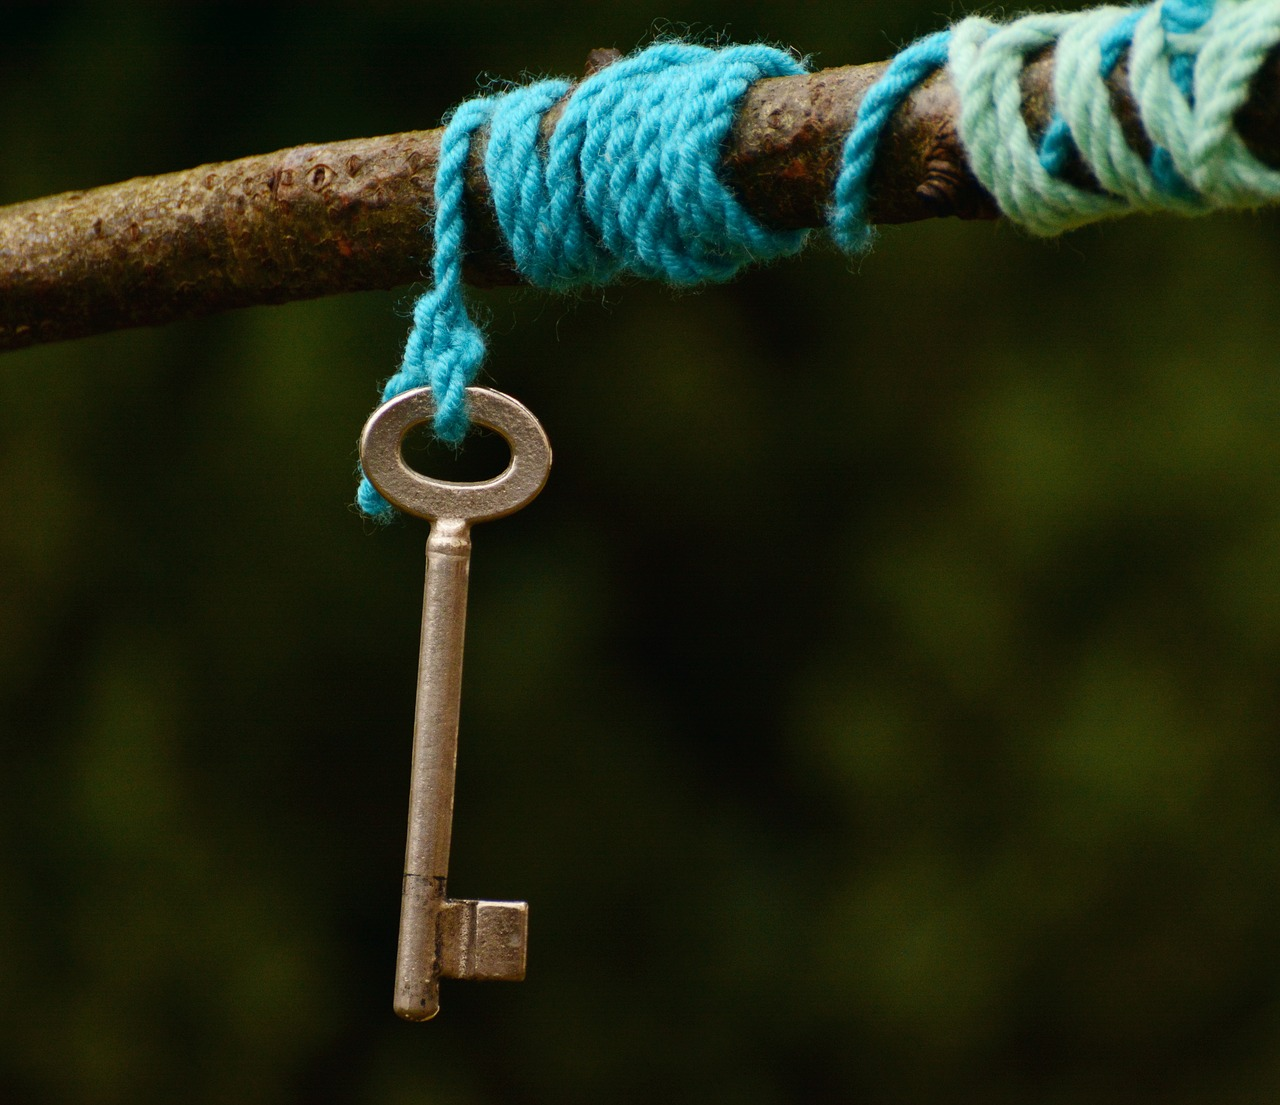 The keyholder is important -